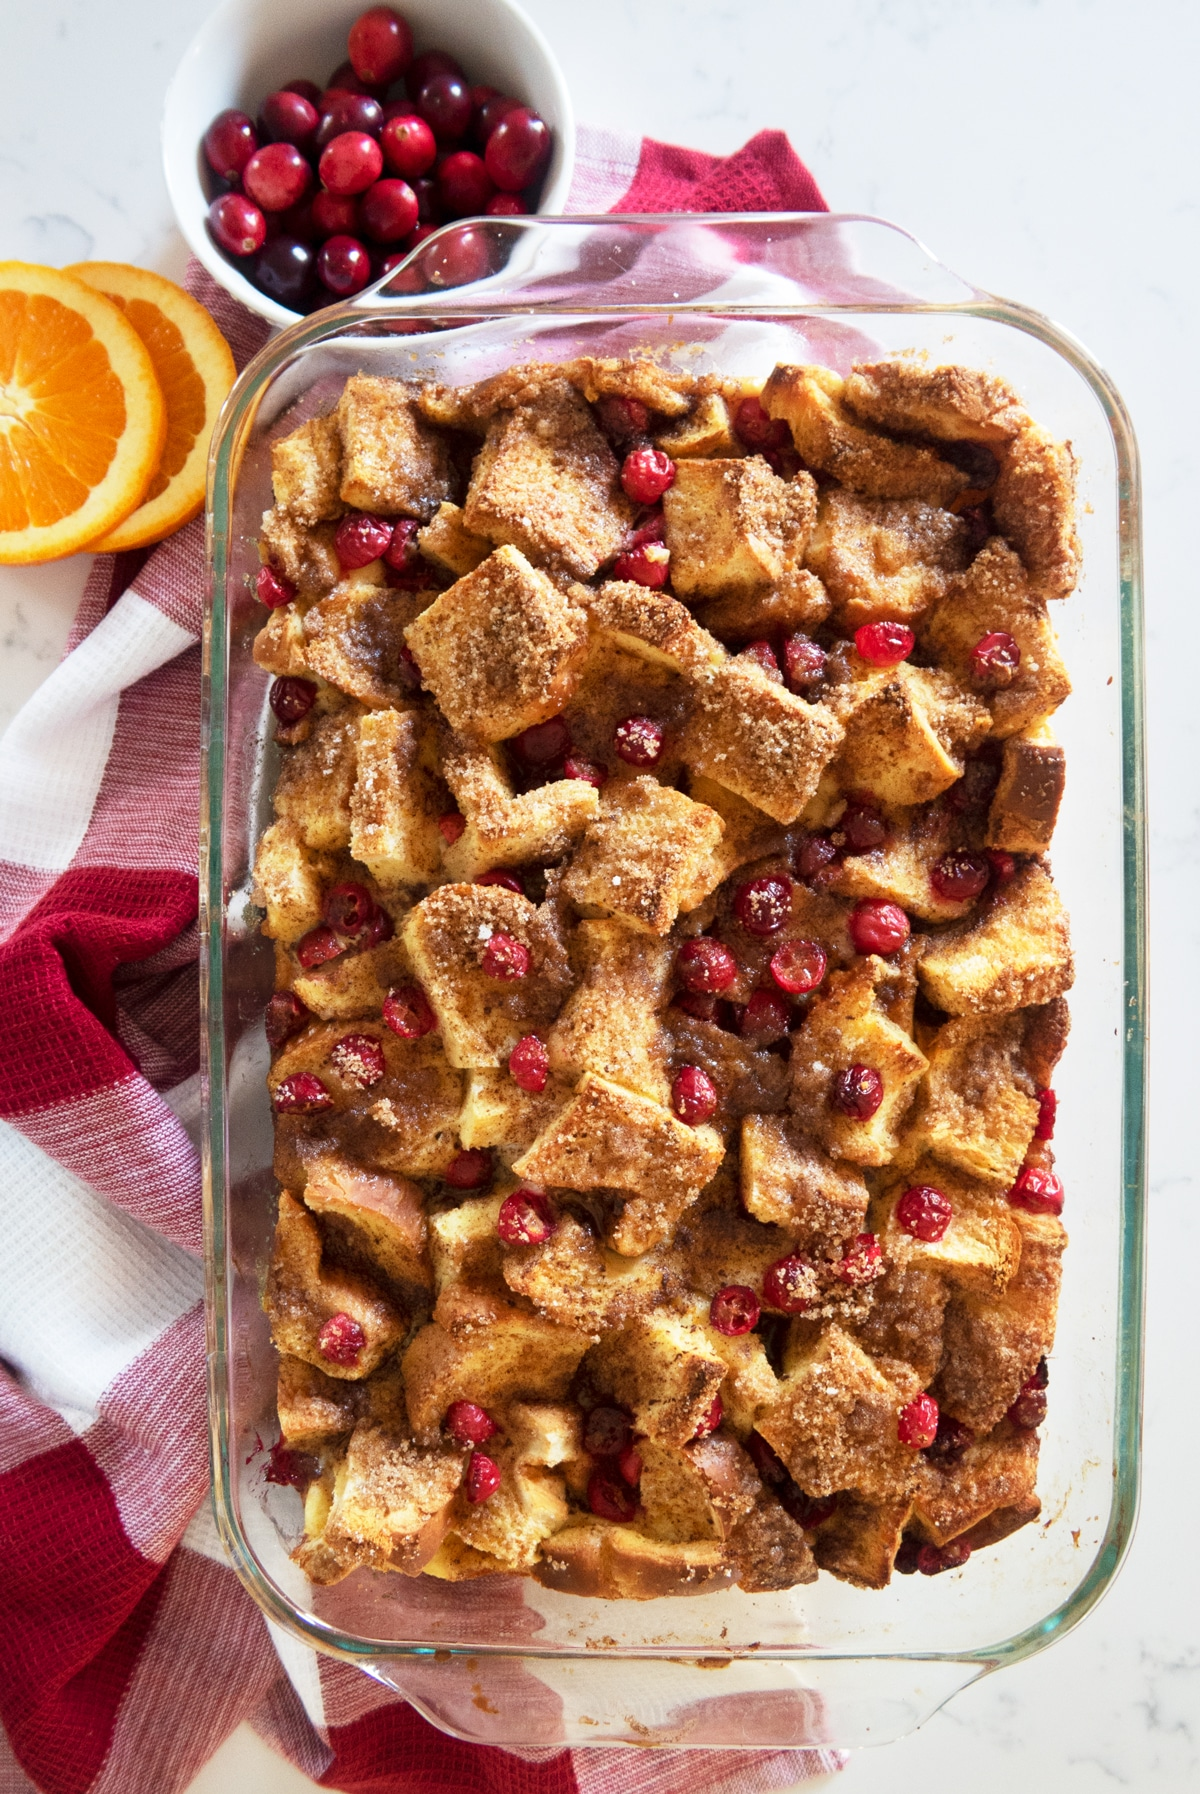 The perfect make-ahead french toast casserole for Christmas morning or brunch. A festive french toast breakfast recipe with cranberries and orange.